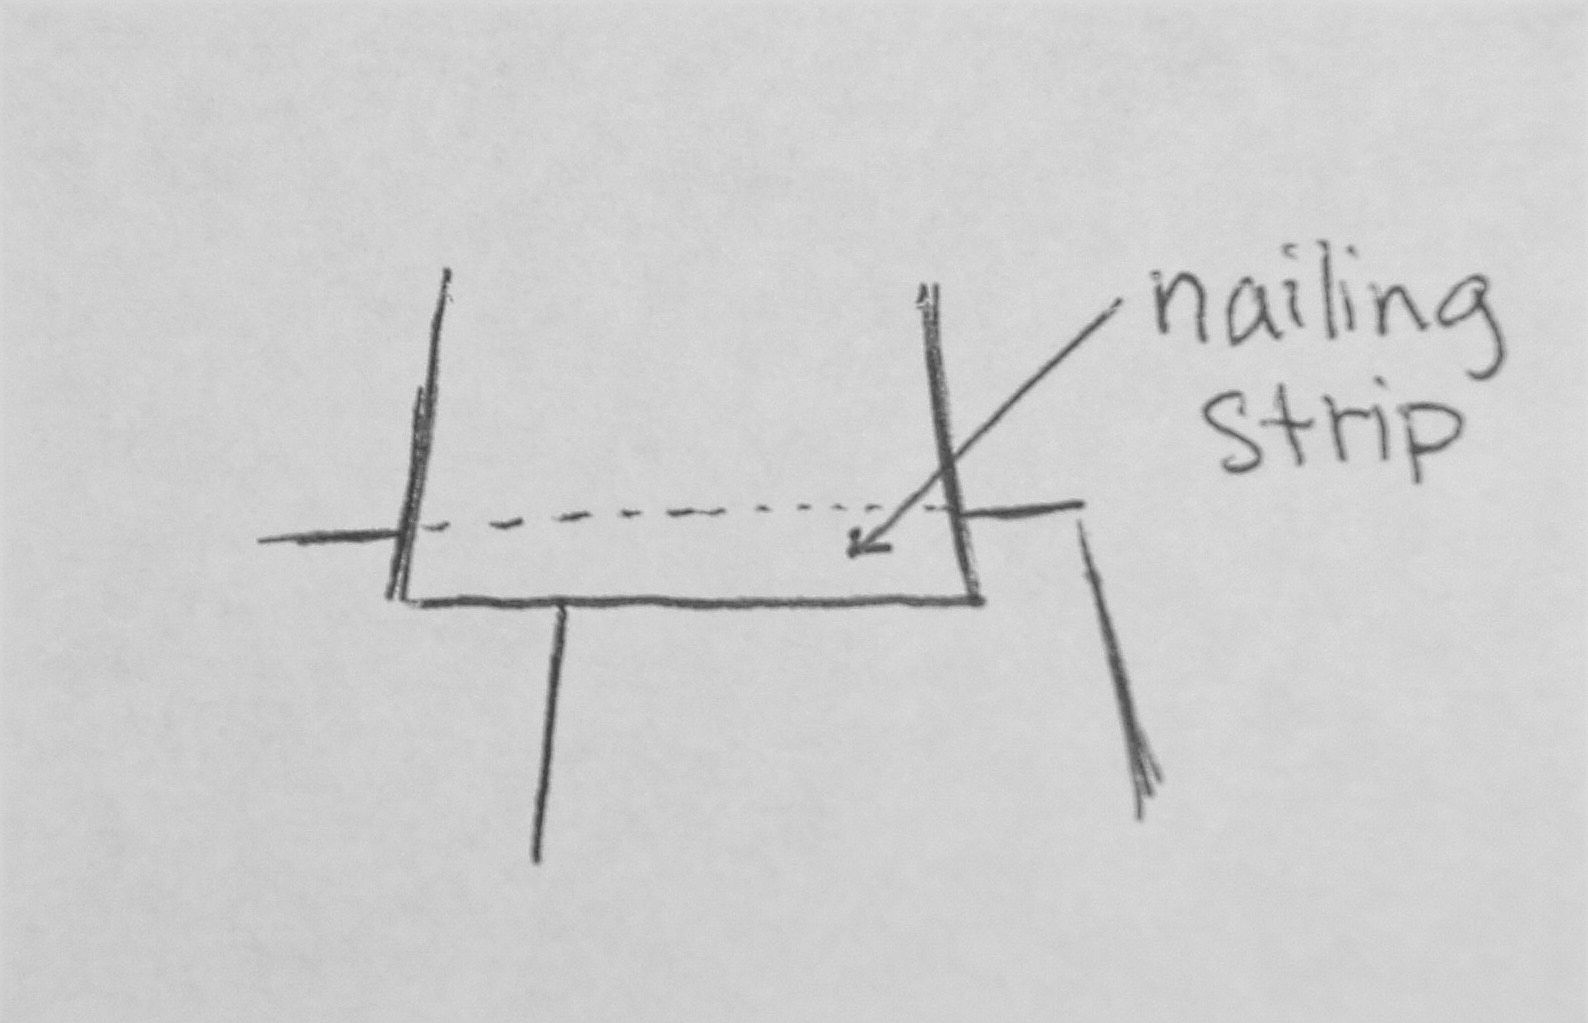 hight resolution of the nailing strip strengthens the shingles and if the nail doesn t land in the right place it causes those shingles to be loose which leads to them blowing